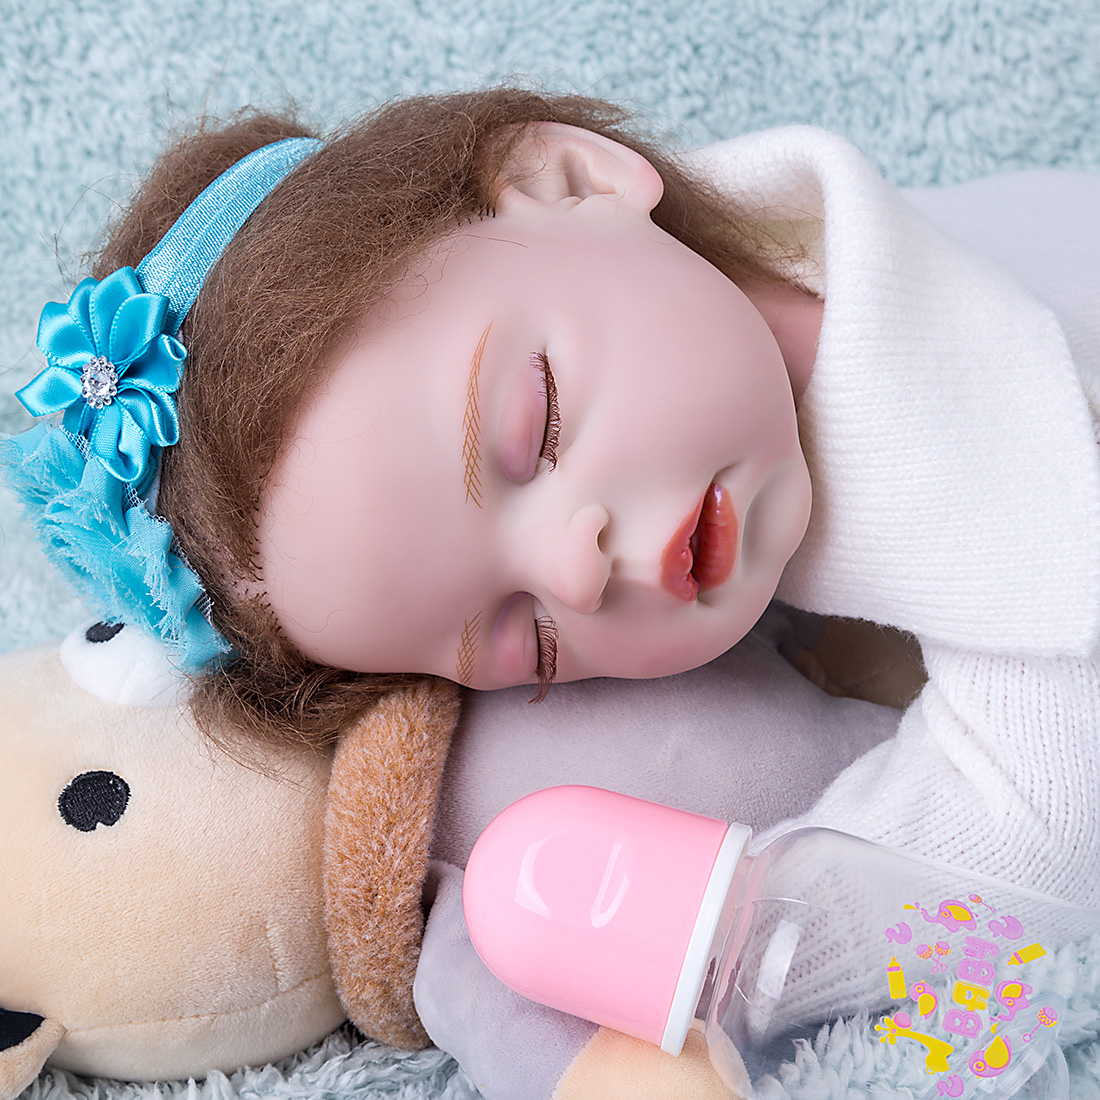 17 Inches Twin A Series Realistic Cute Karina Silicone Reborn Baby Doll Girl Costume Set - Silicone Vinyl Body (Cloth Is Random)